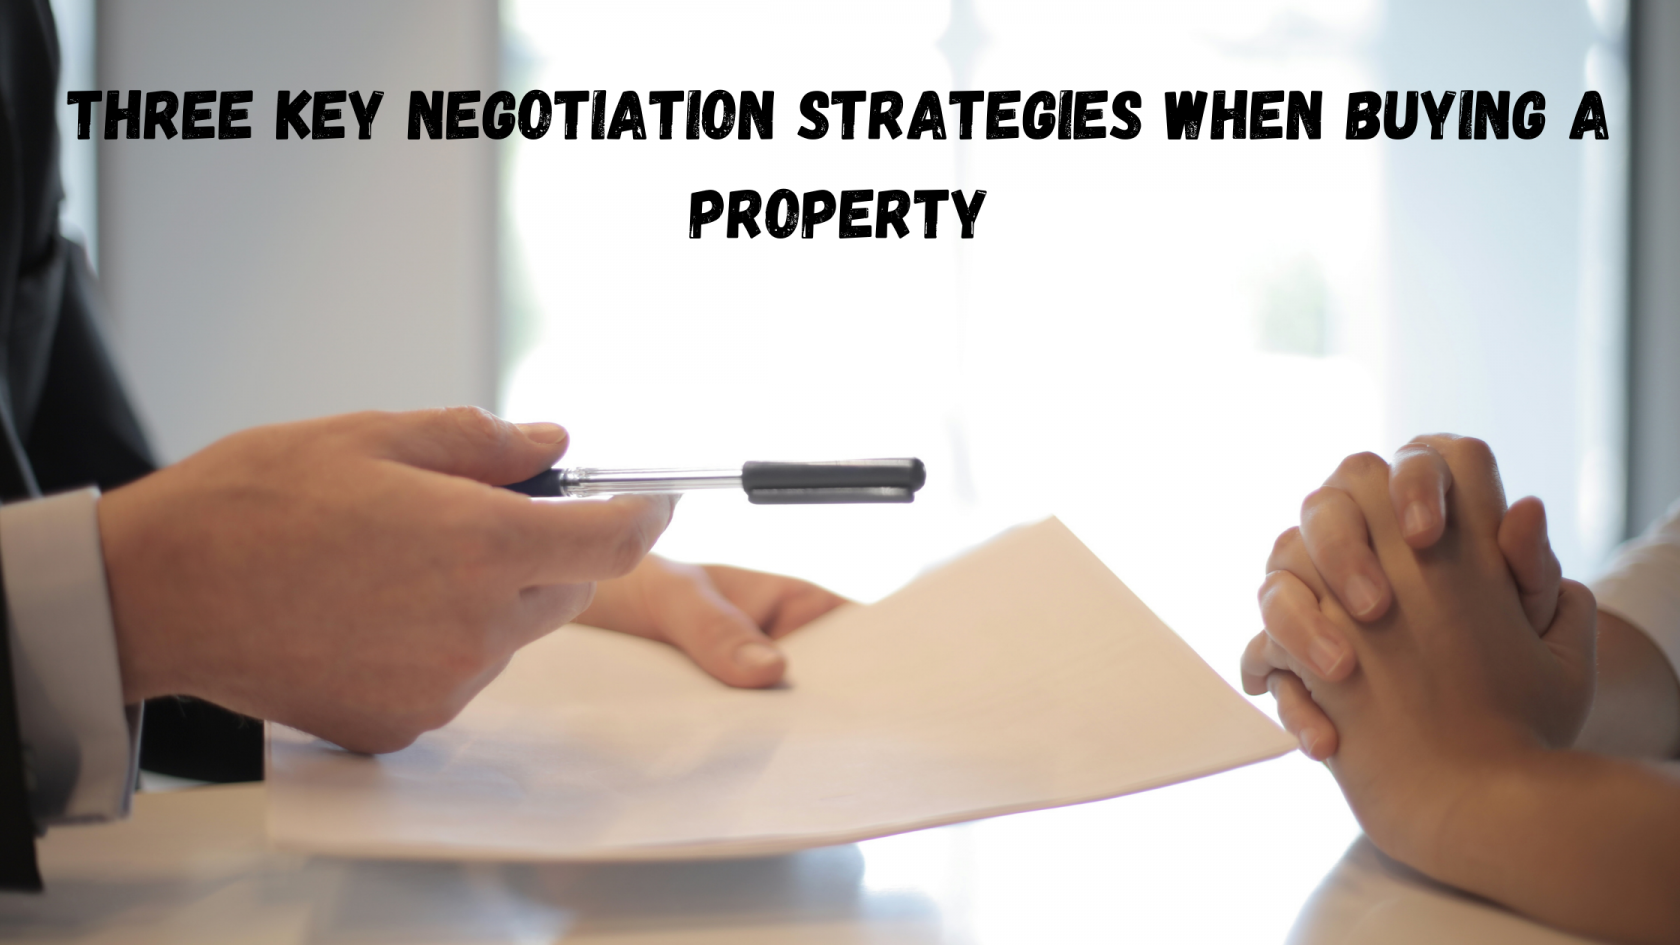 Key Negotiation Strategies When Buying a Property